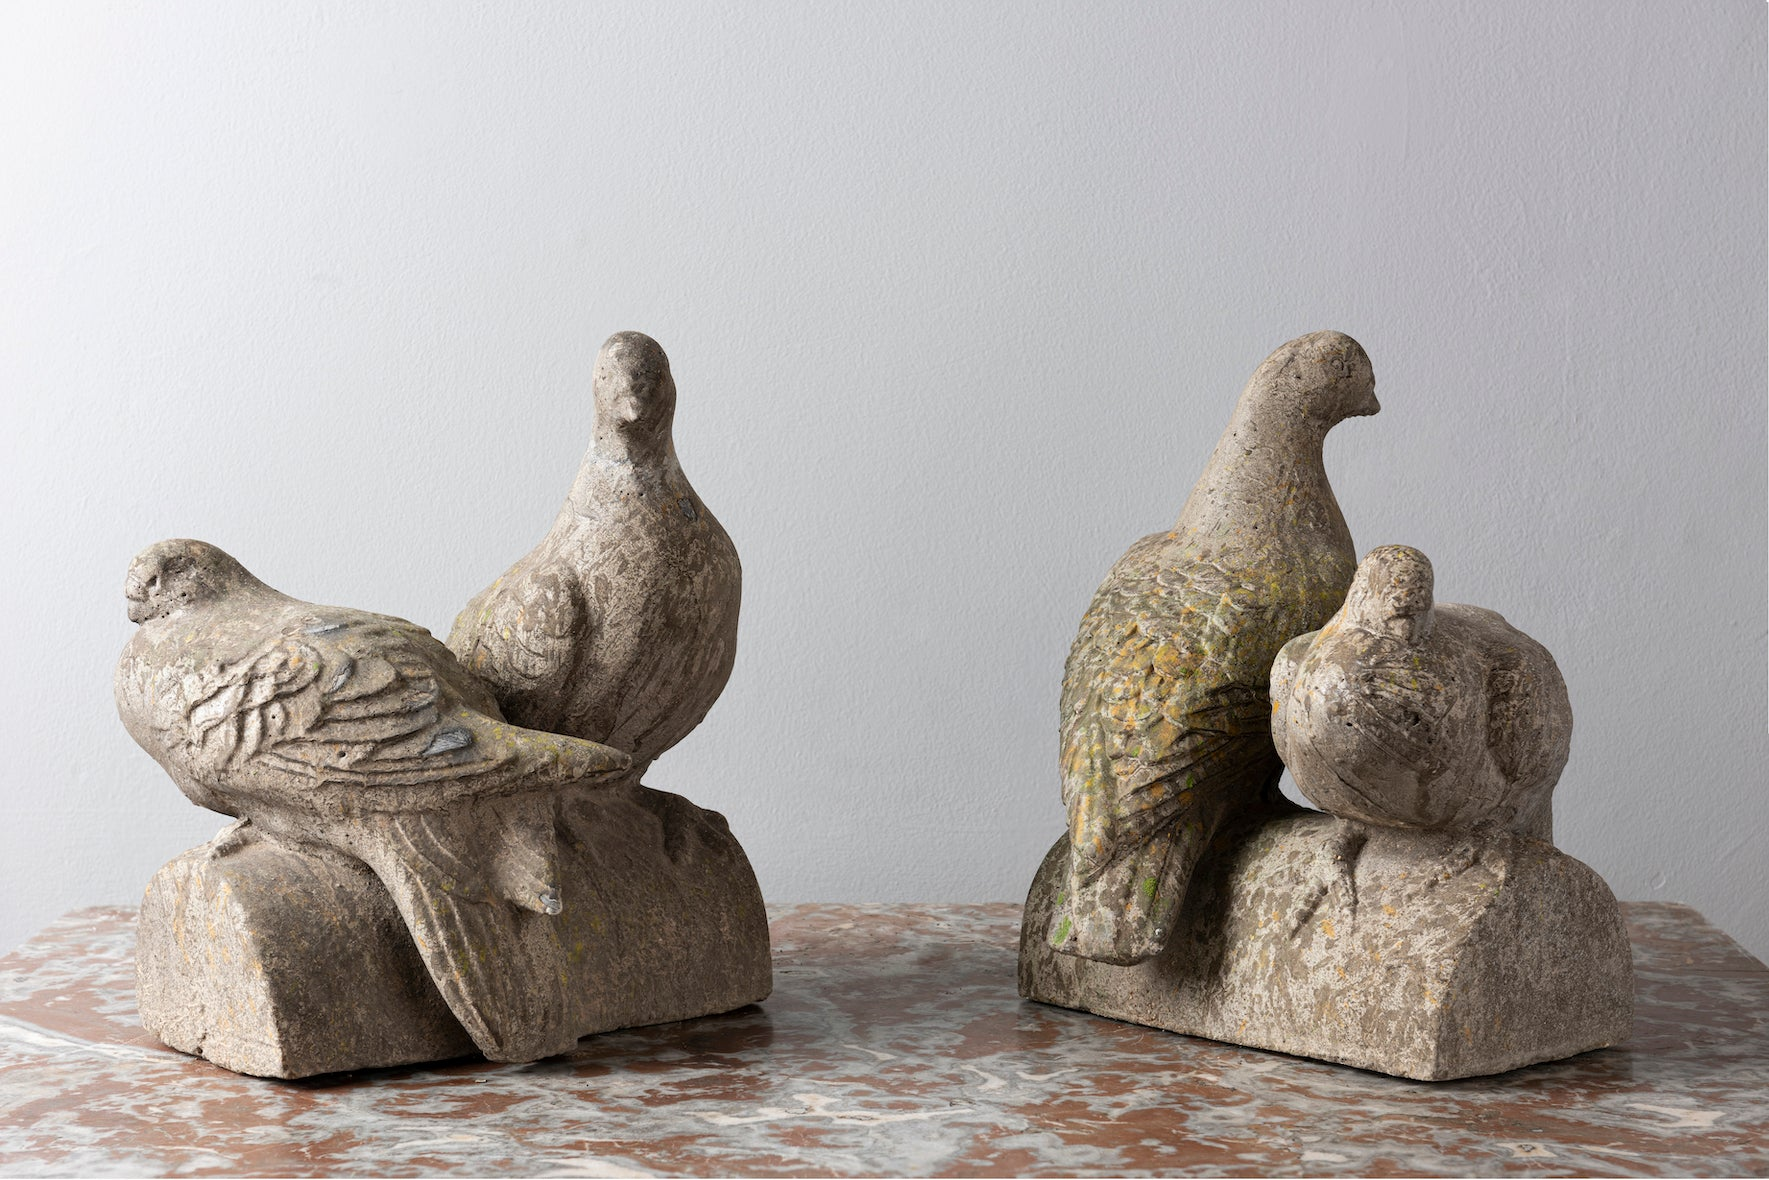 SOLD A garden sculpture in the form of two doves roosting